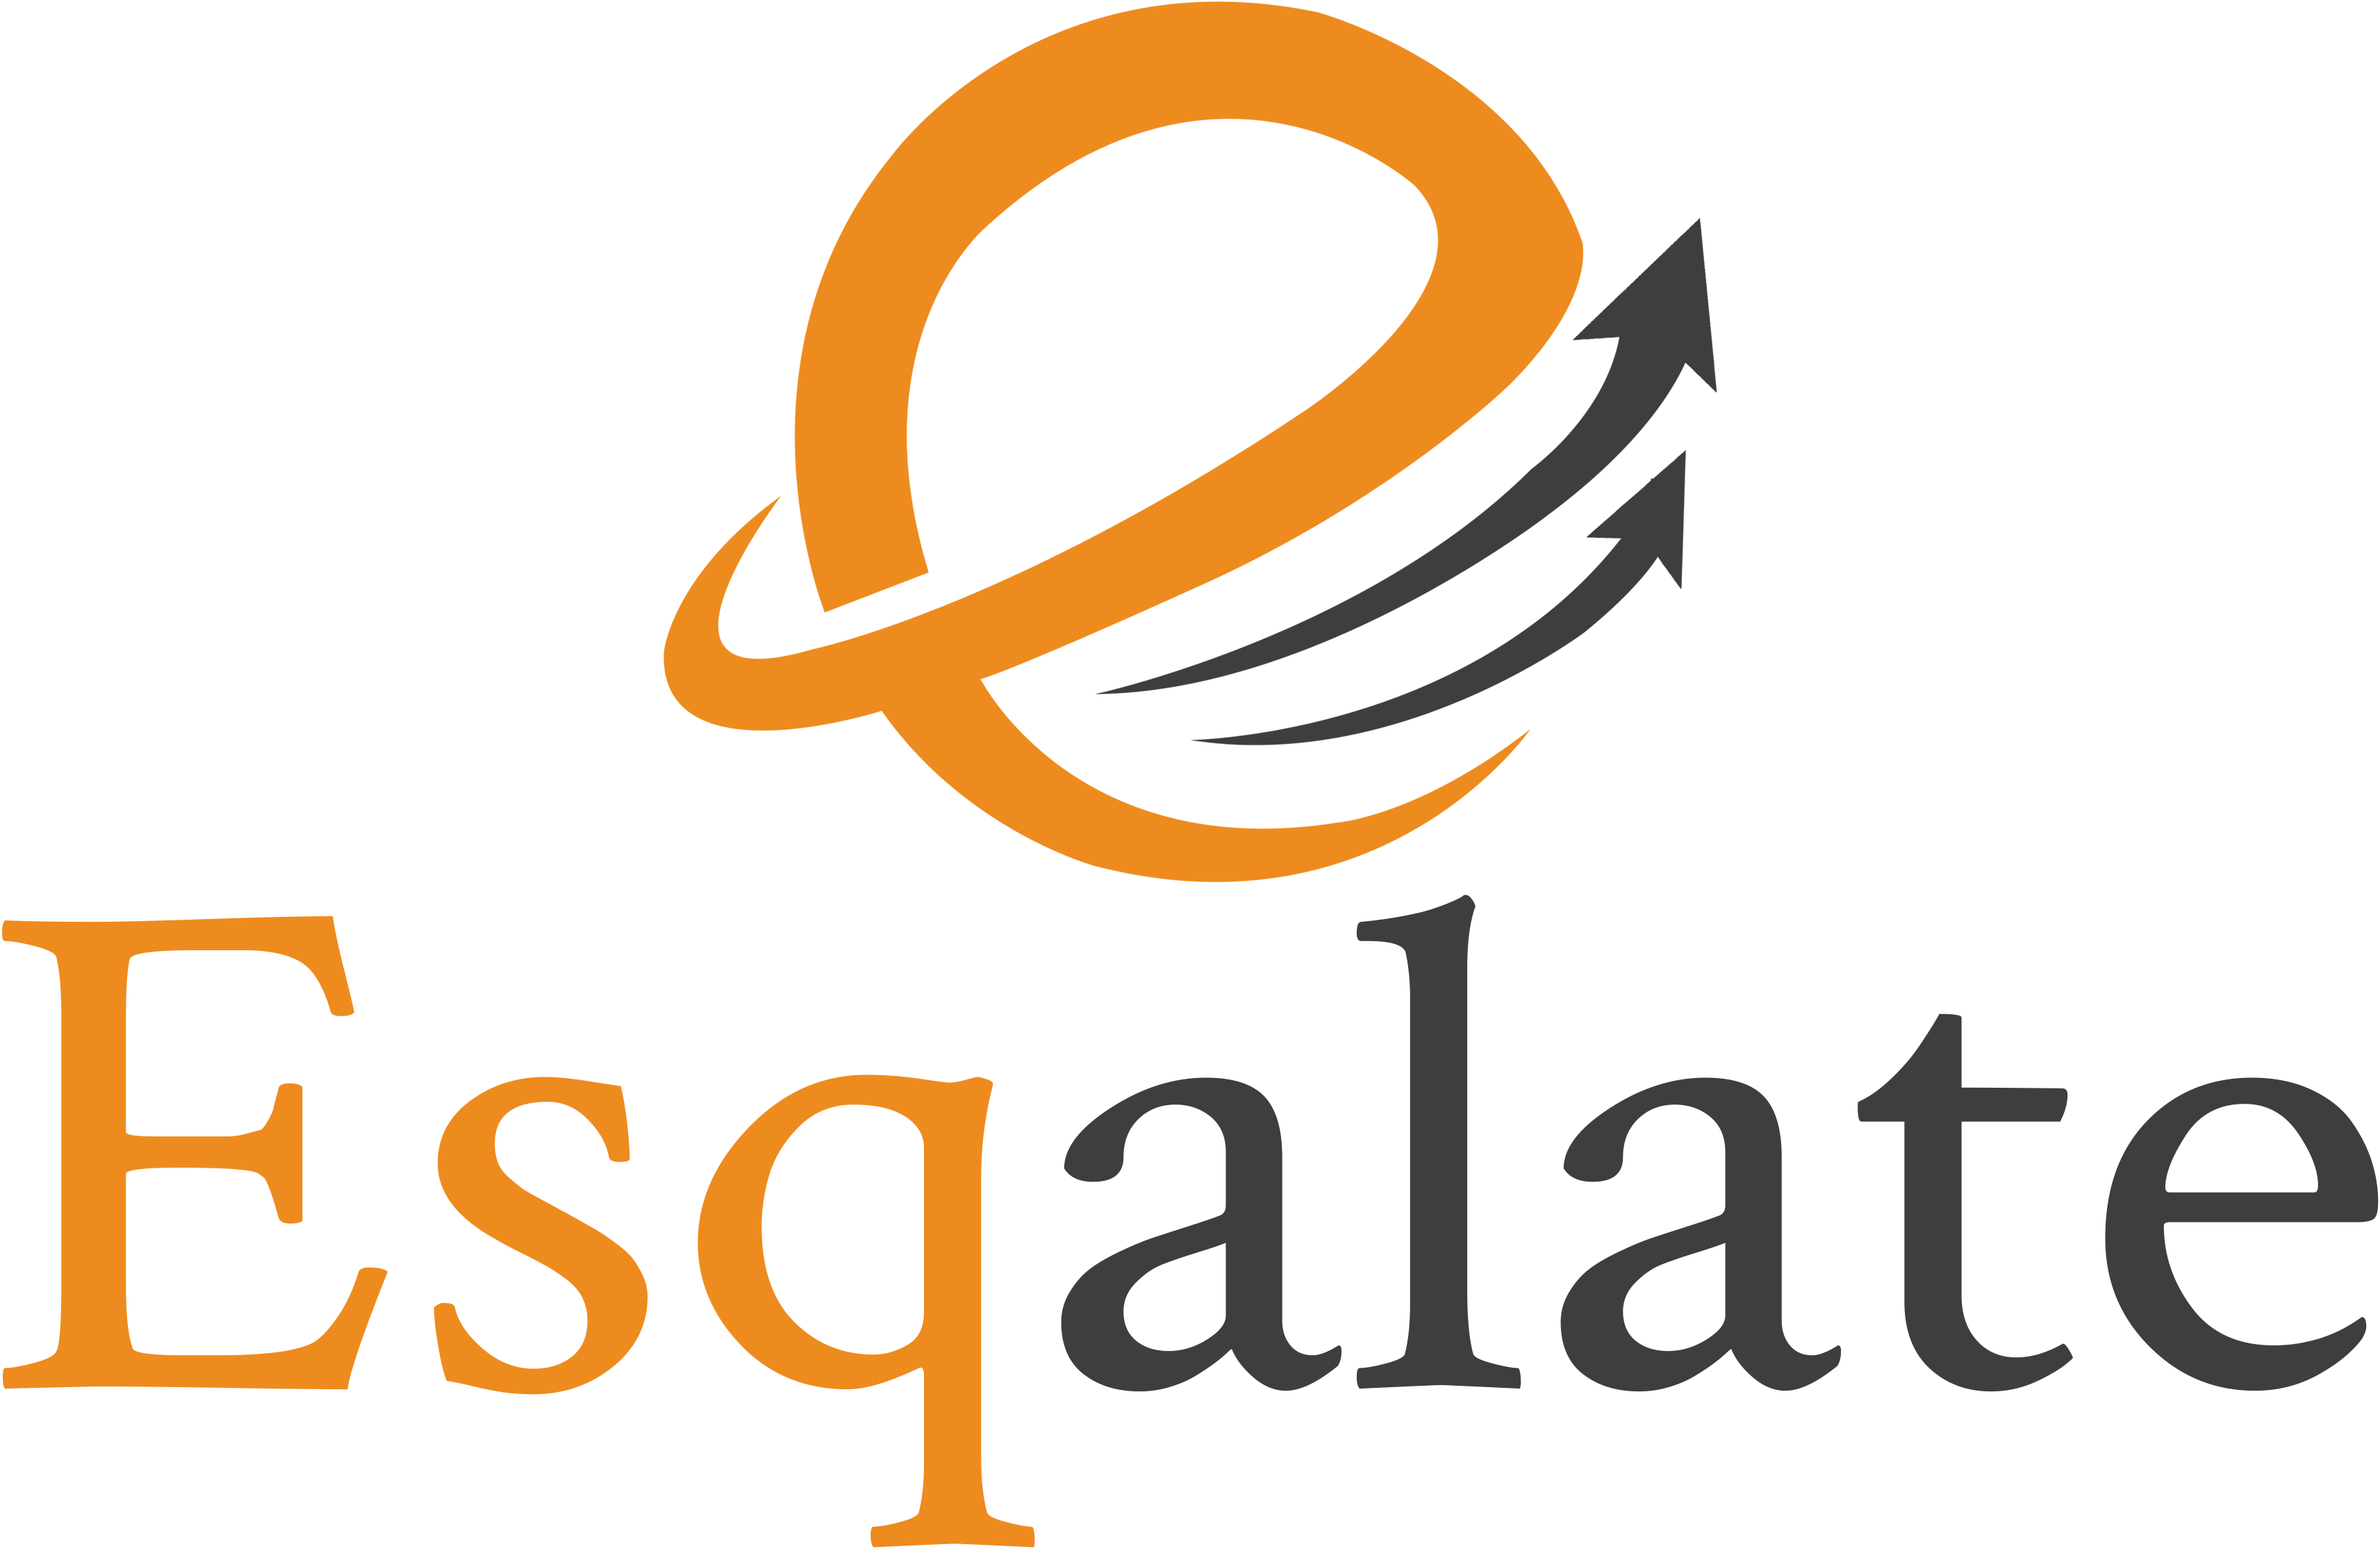 esqalate-logo(simplest) (1)